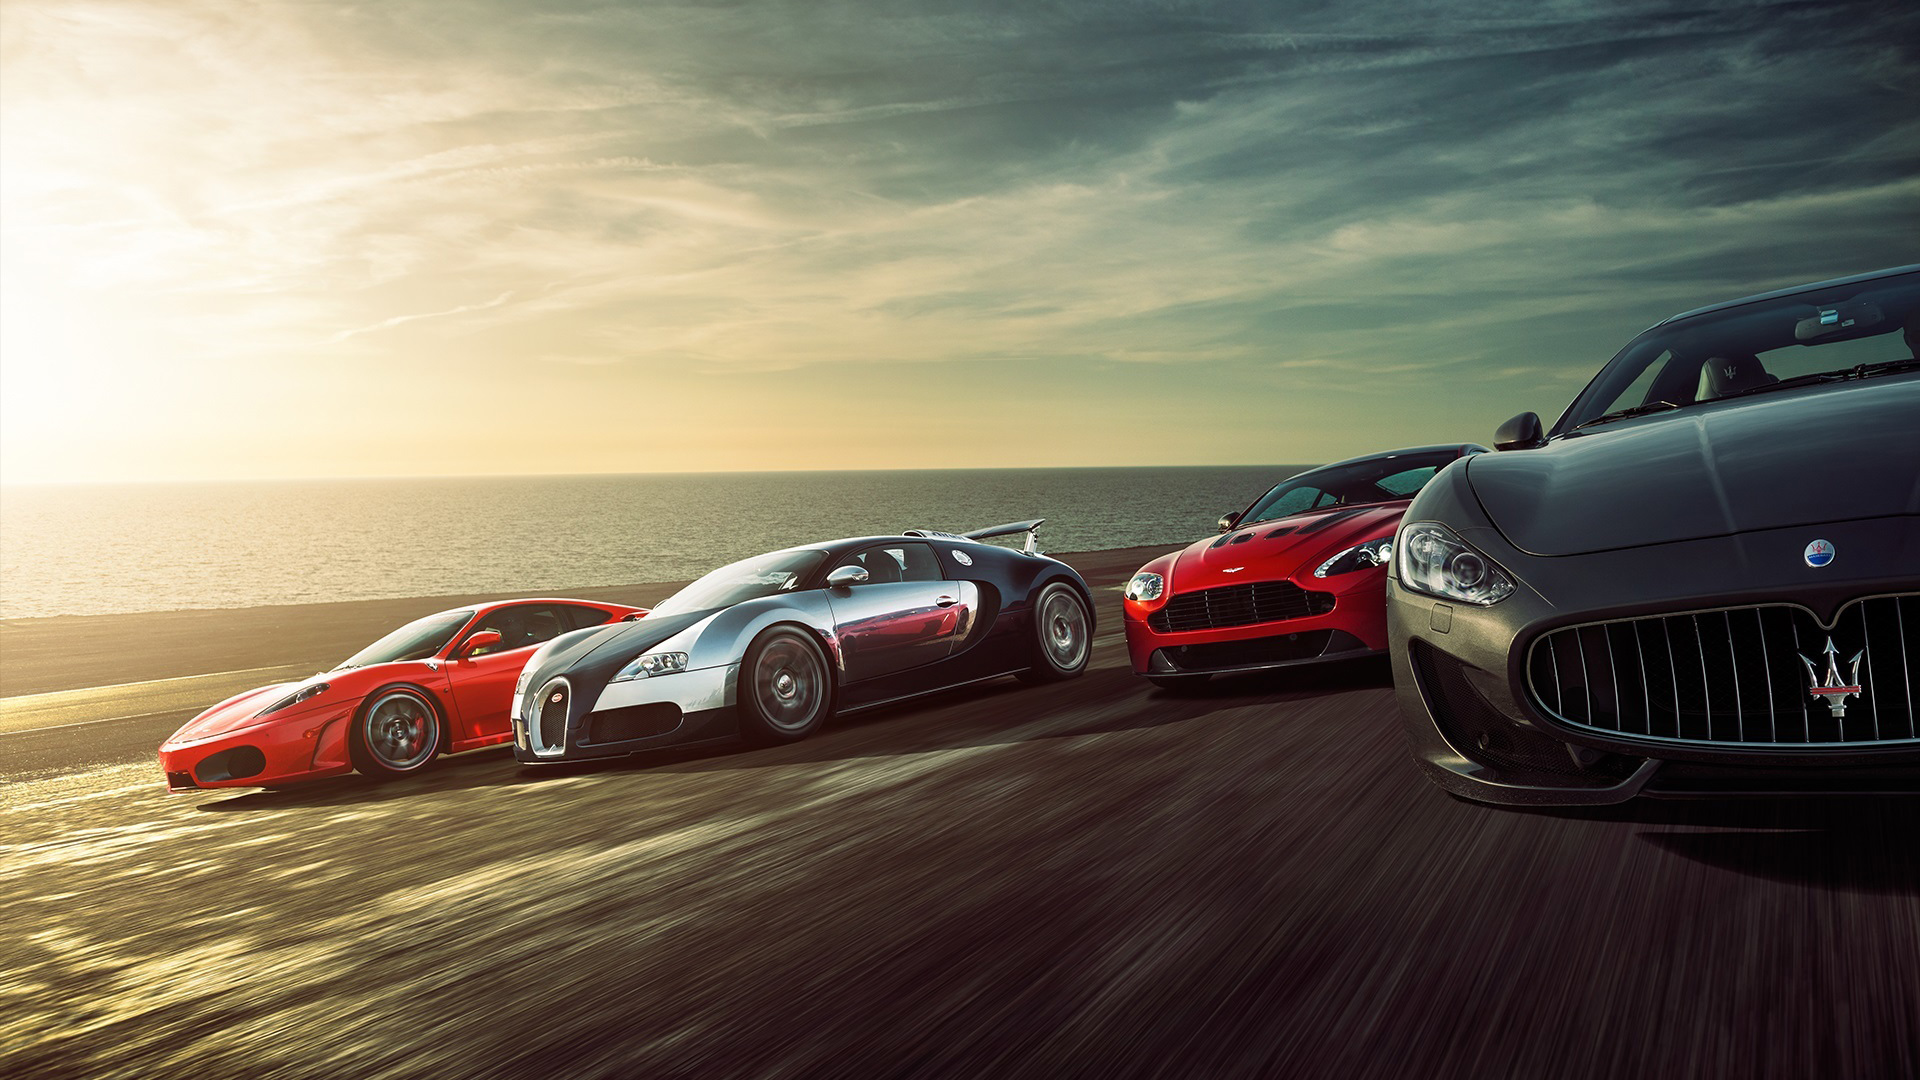 Super Sports Cars HD Wallpaper New Tab